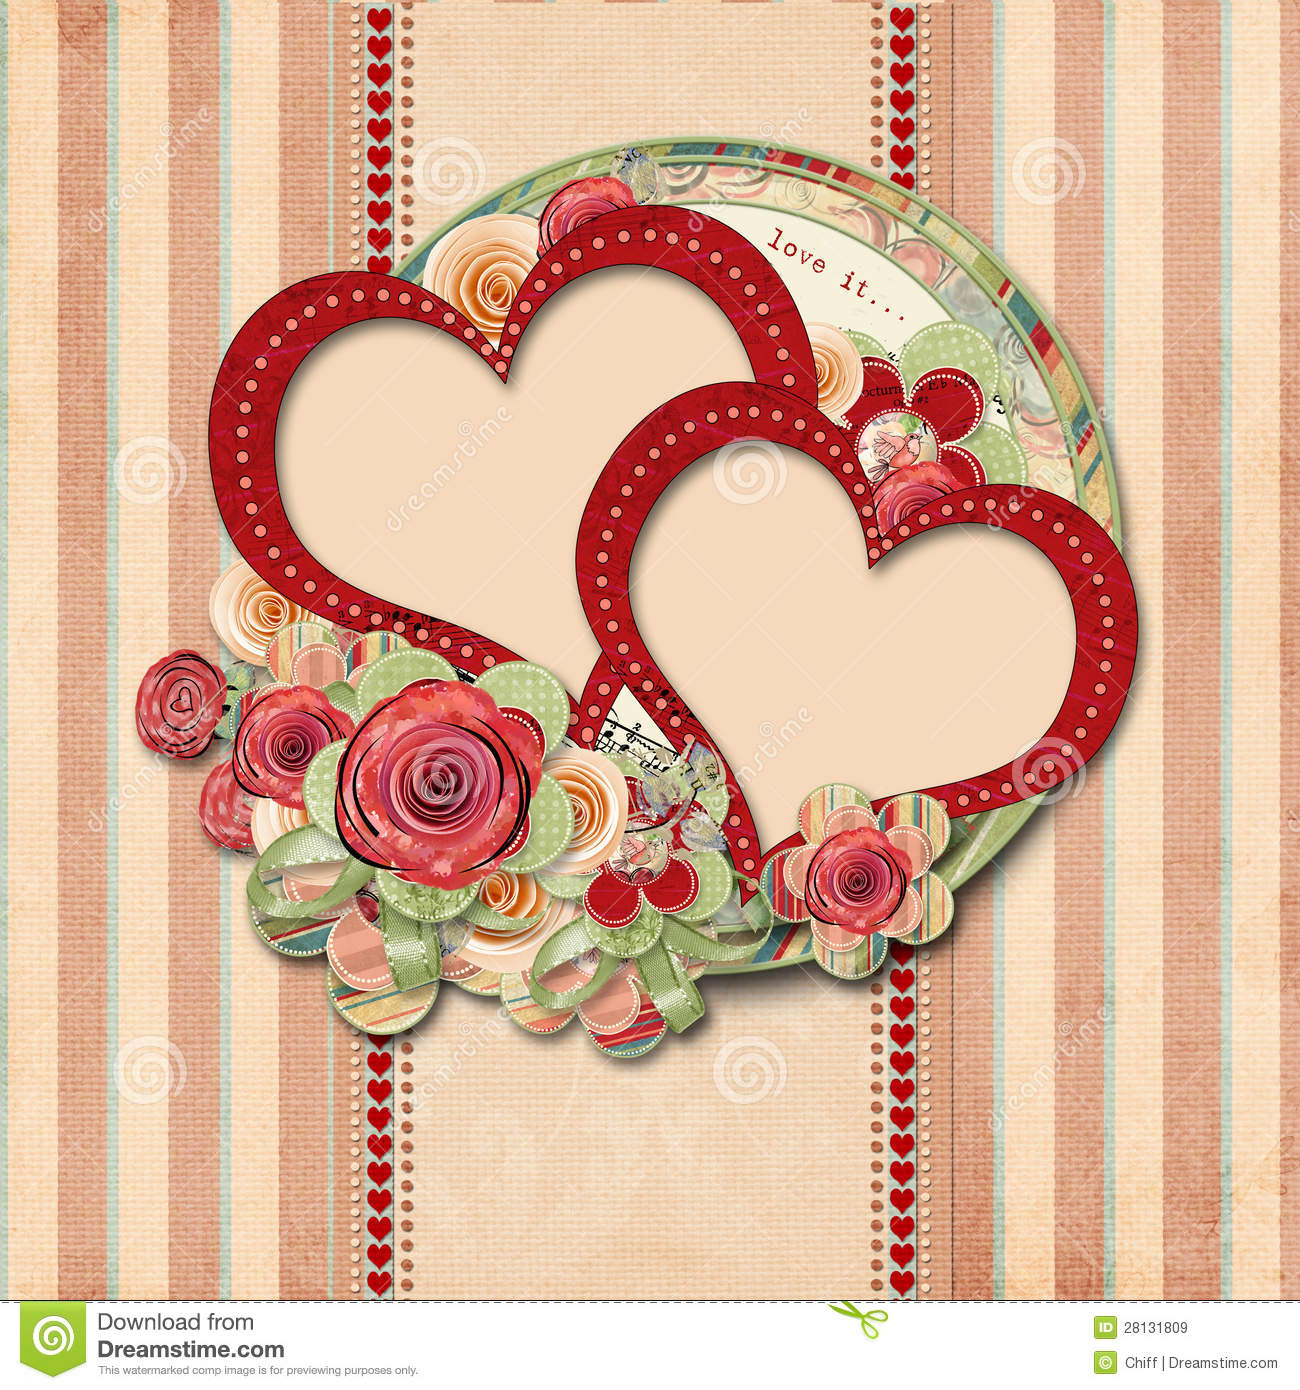 vintage valentine background valentines - photo #20